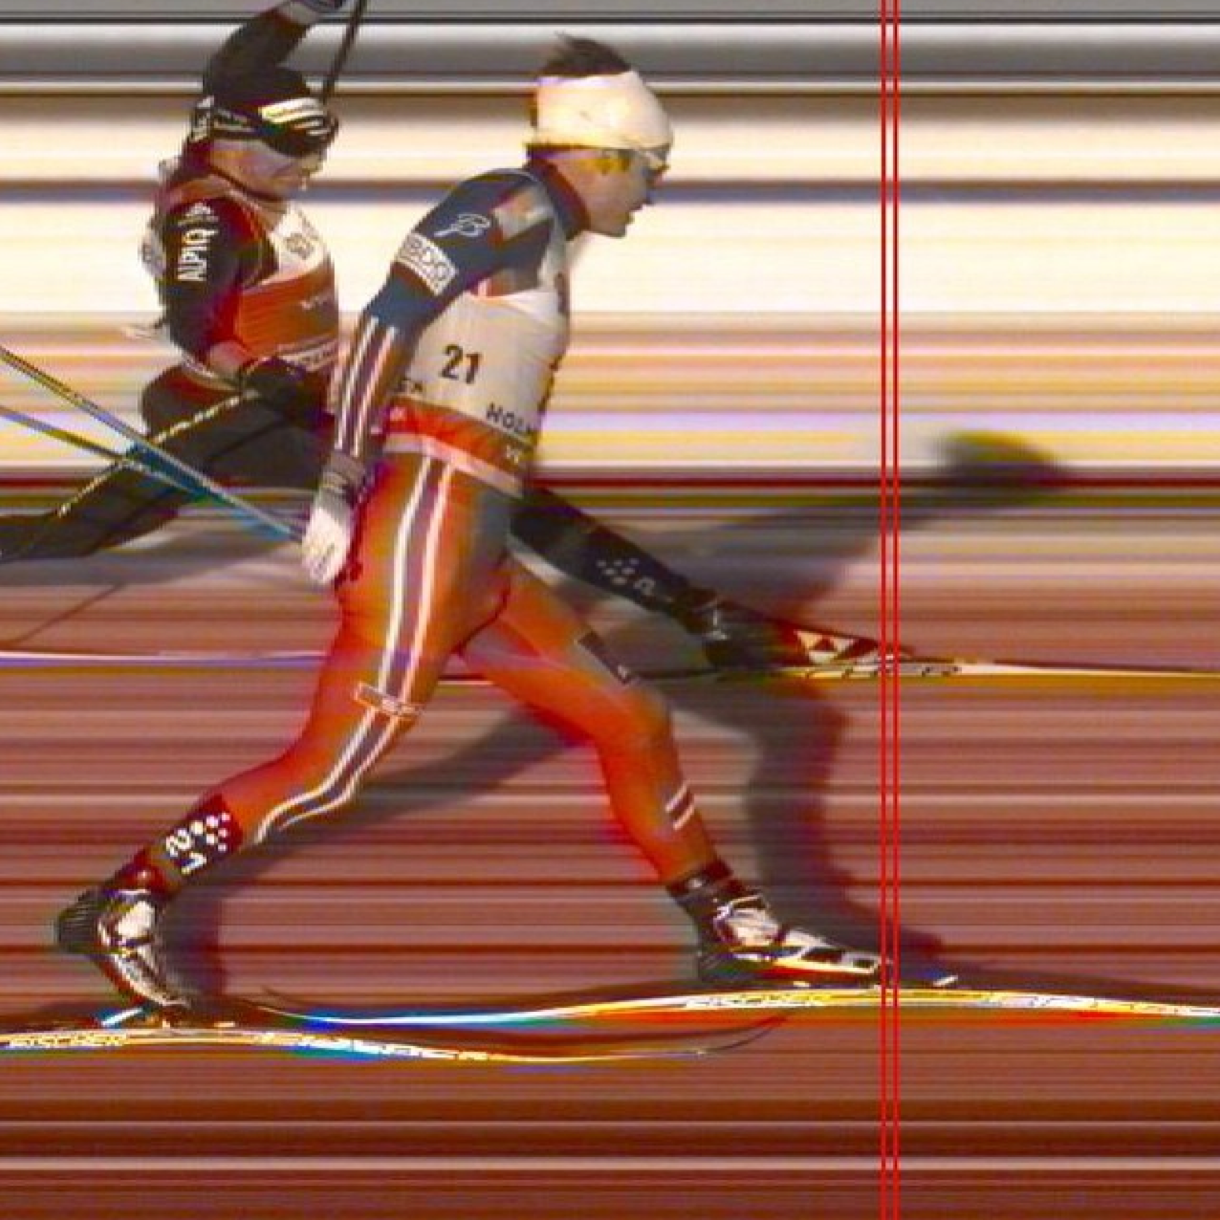 https://fasterskier.com/wp-content/blogs.dir/1/files/2015/03/Roethe-Cologna-Photo-Finish-FIS-Instagram.png